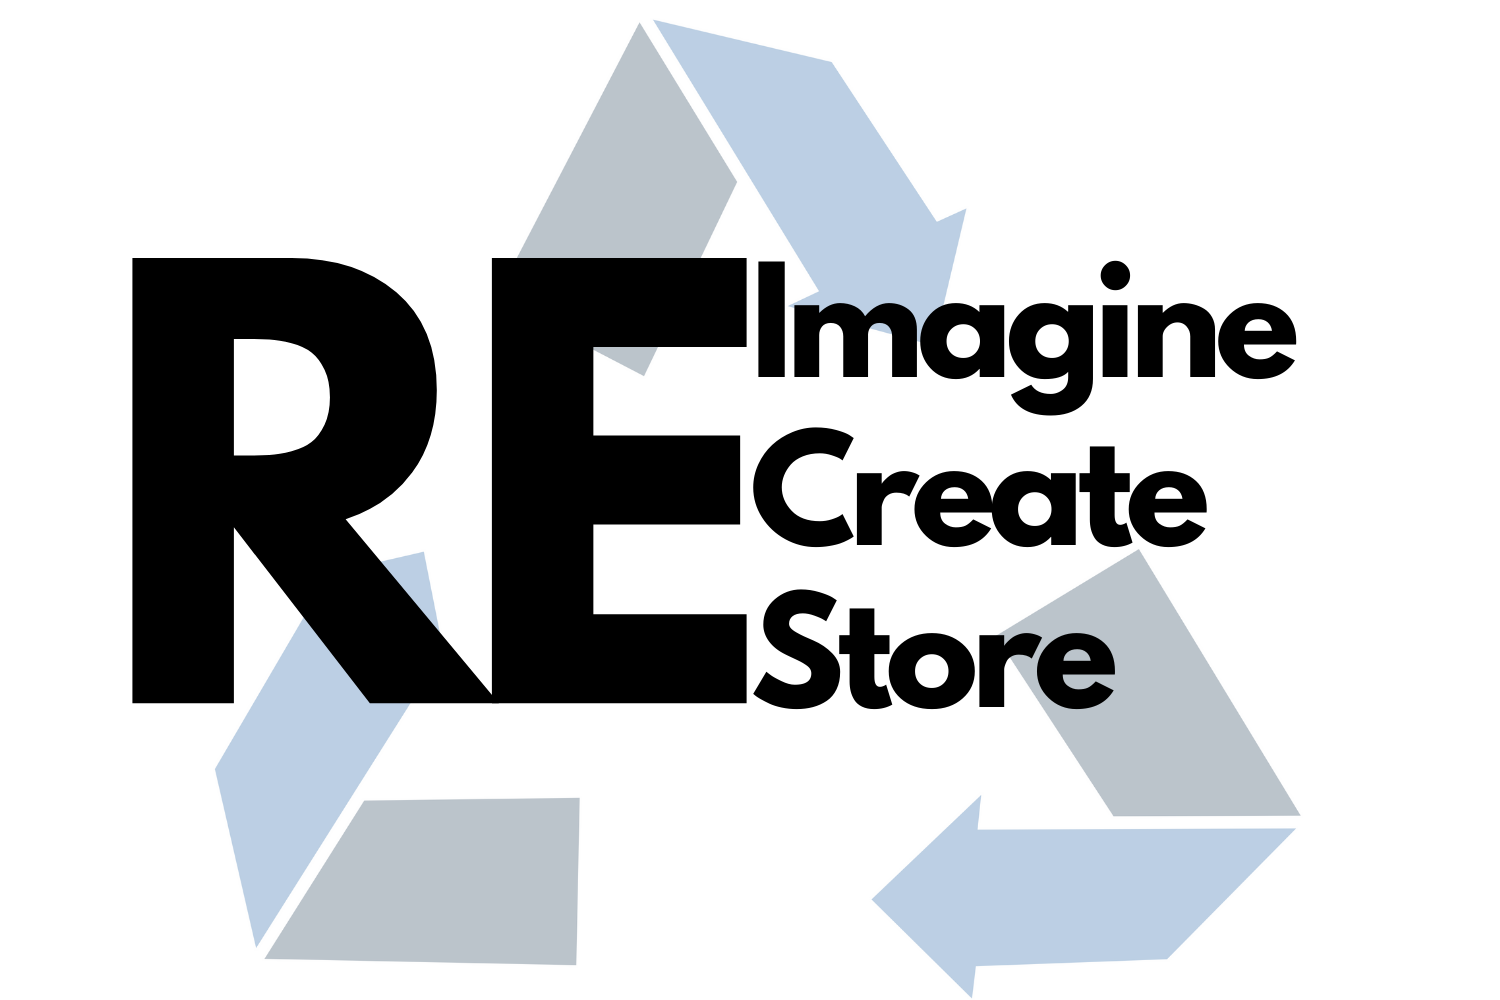 Theme for world environment day 2021 is Reimagine, Recreate, Restore